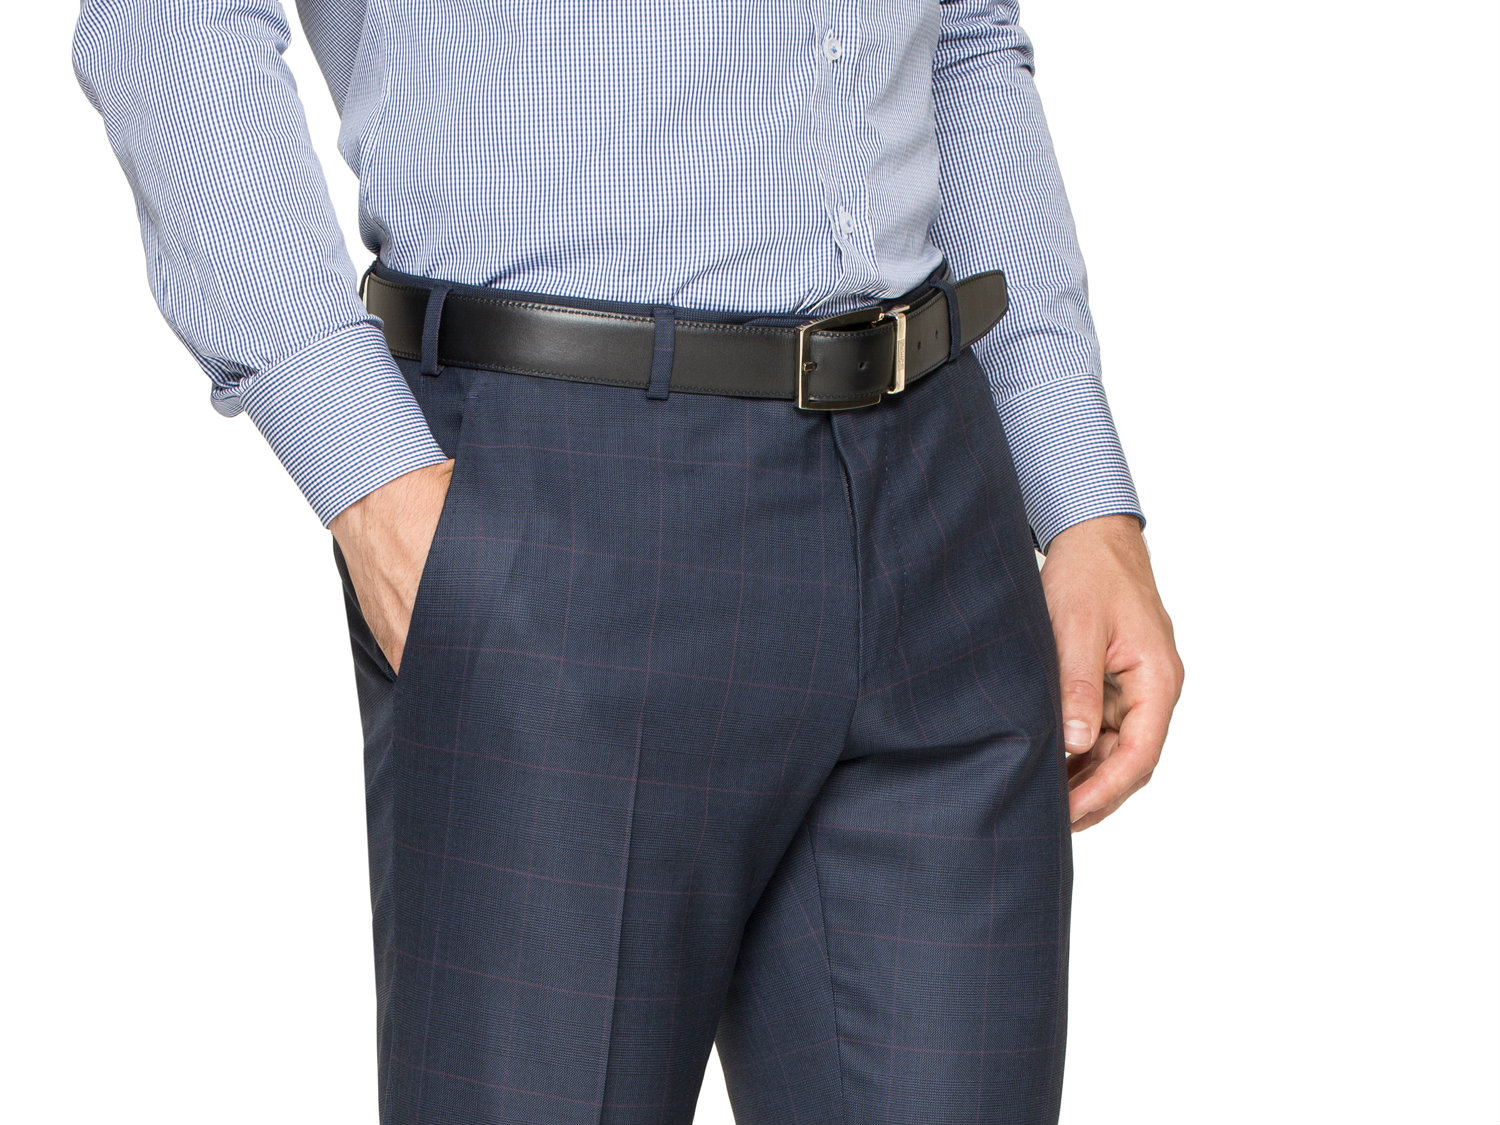 New Era Factory Outlet Mens Slim Fit Navy Blue 2 Button Dress Suit with Flat Front Pants 46 Regular